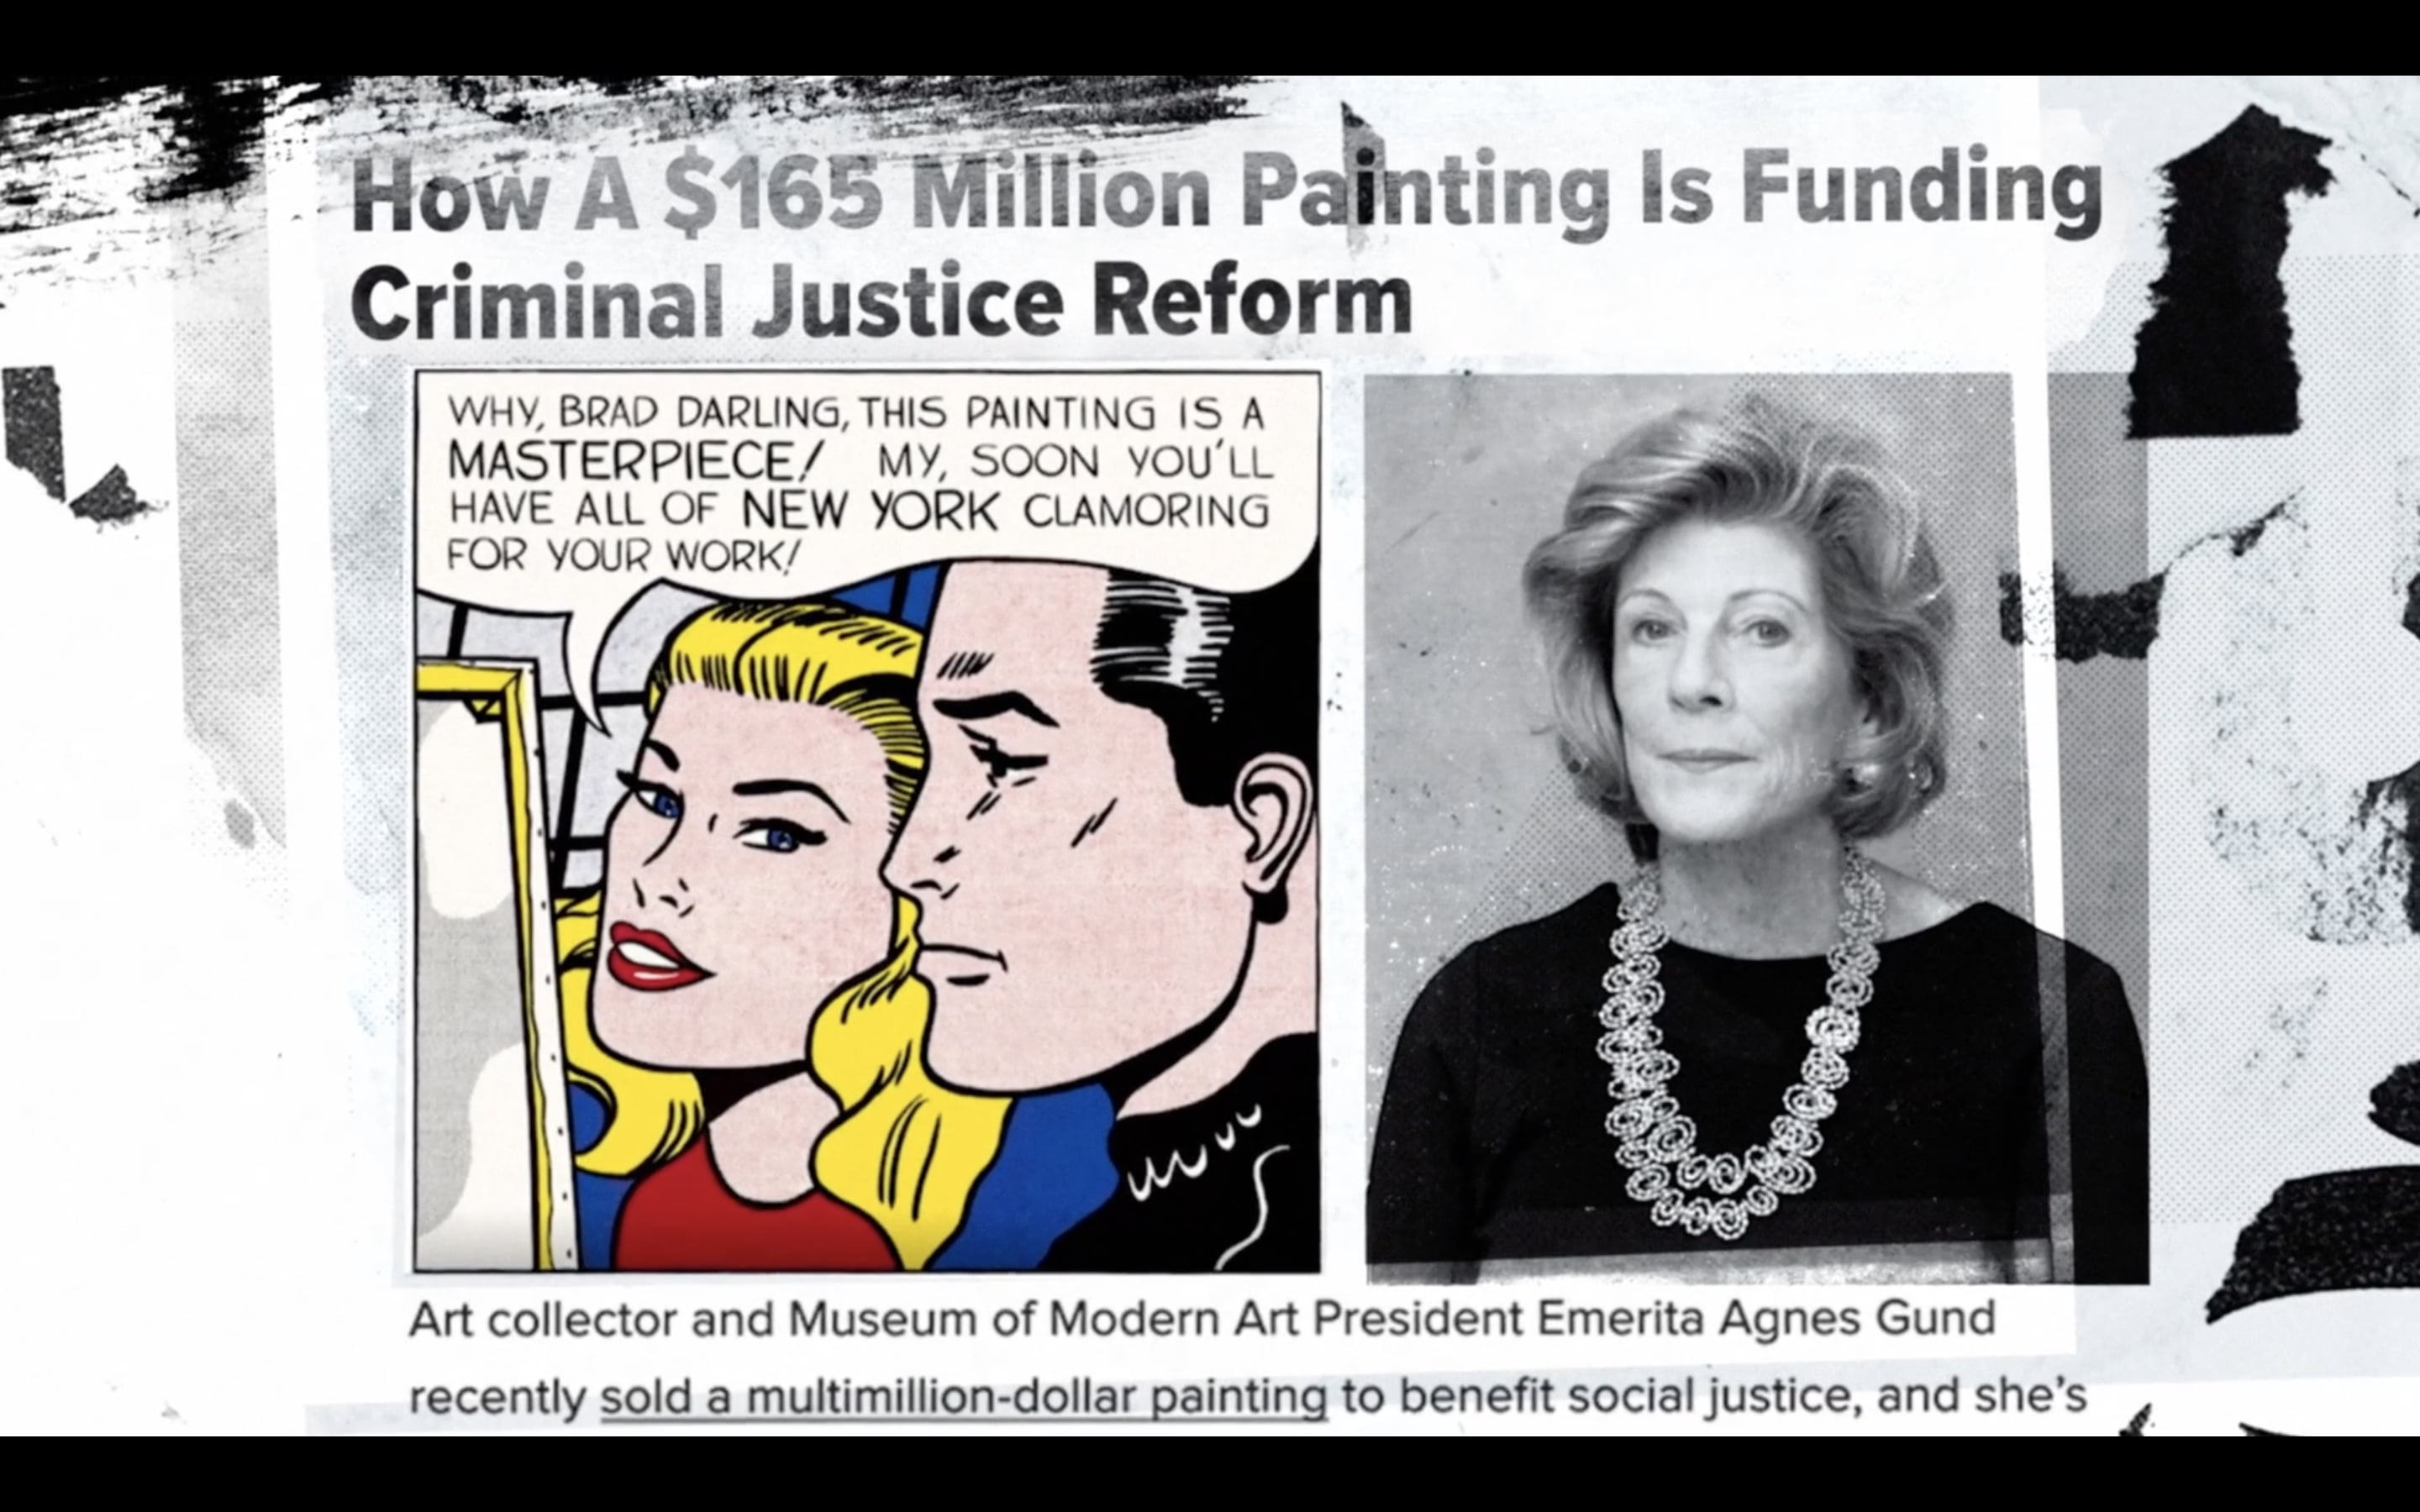 """Agnes Gund featured in June 14, 2017 news story alongside image of Roy Lichtenstein's """"Masterpiece,"""" as seen in Aggie, directed by Catherine Gund"""